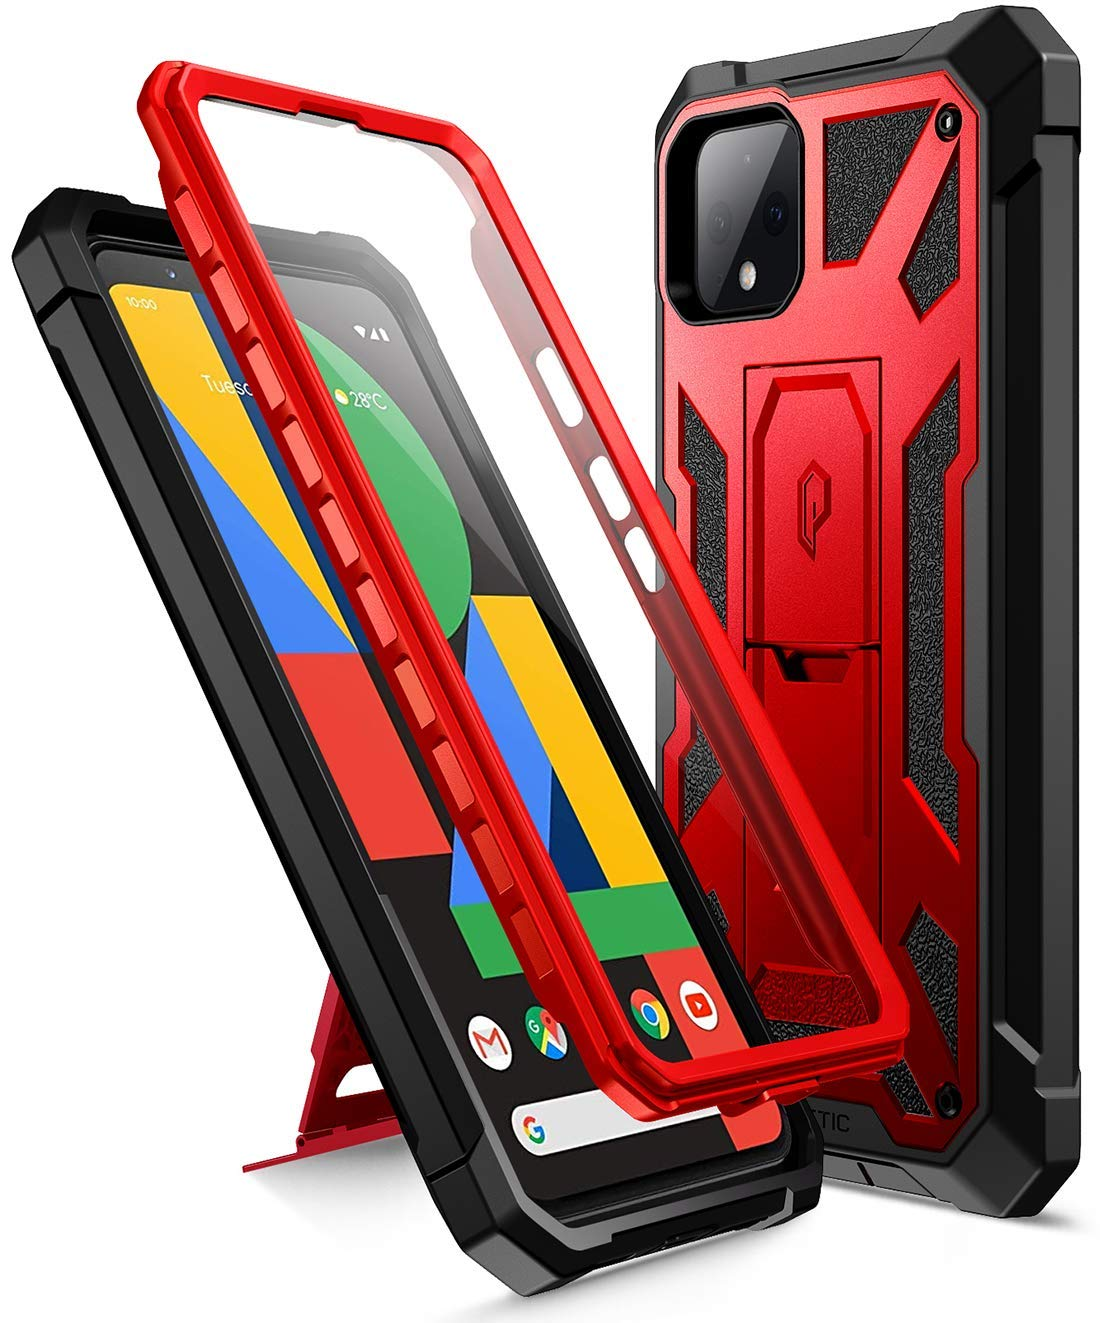 Poetic Spartan Series Designed for Google Pixel 4 5.7 inch Case, Full-Body Rugged Dual-Layer Metallic Color with Premium Leather Texture Shockproof Protective Cover with Kickstand, Metallic Red